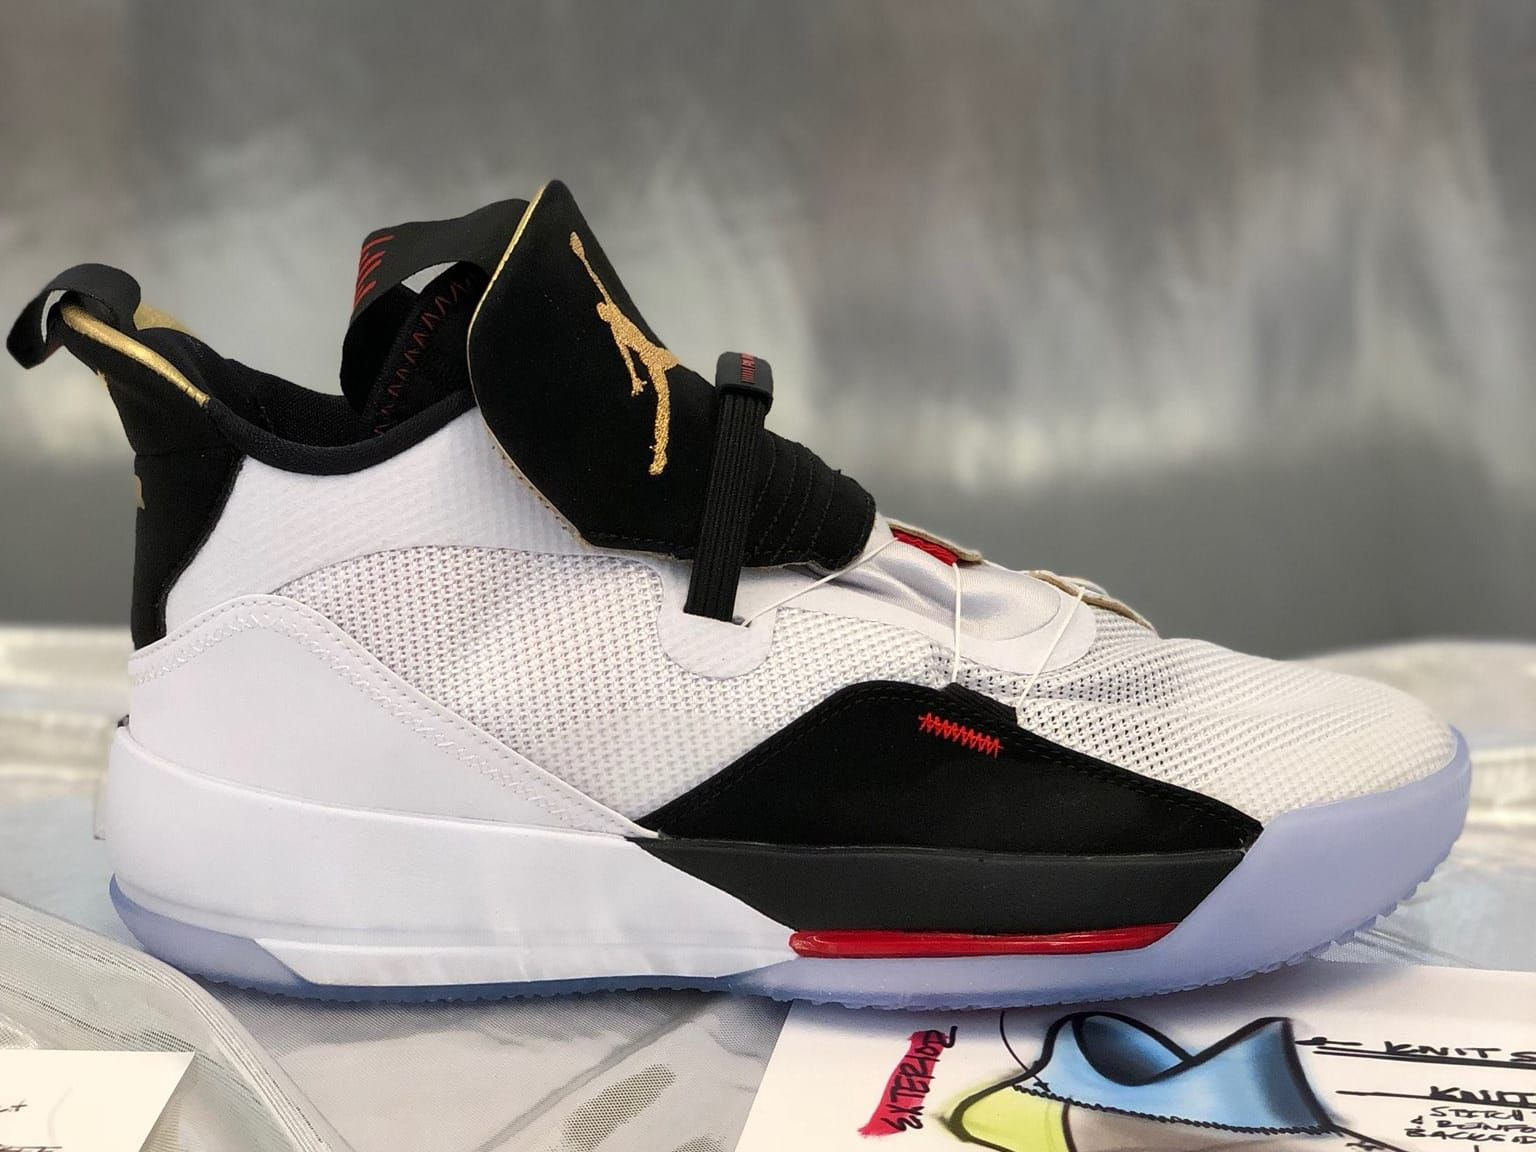 sports shoes dbb6d accfb Air Jordan 33 White Black Red Launch Release Date Profile - Air Jordan 33  XXXIII Release Date   Sole Collector